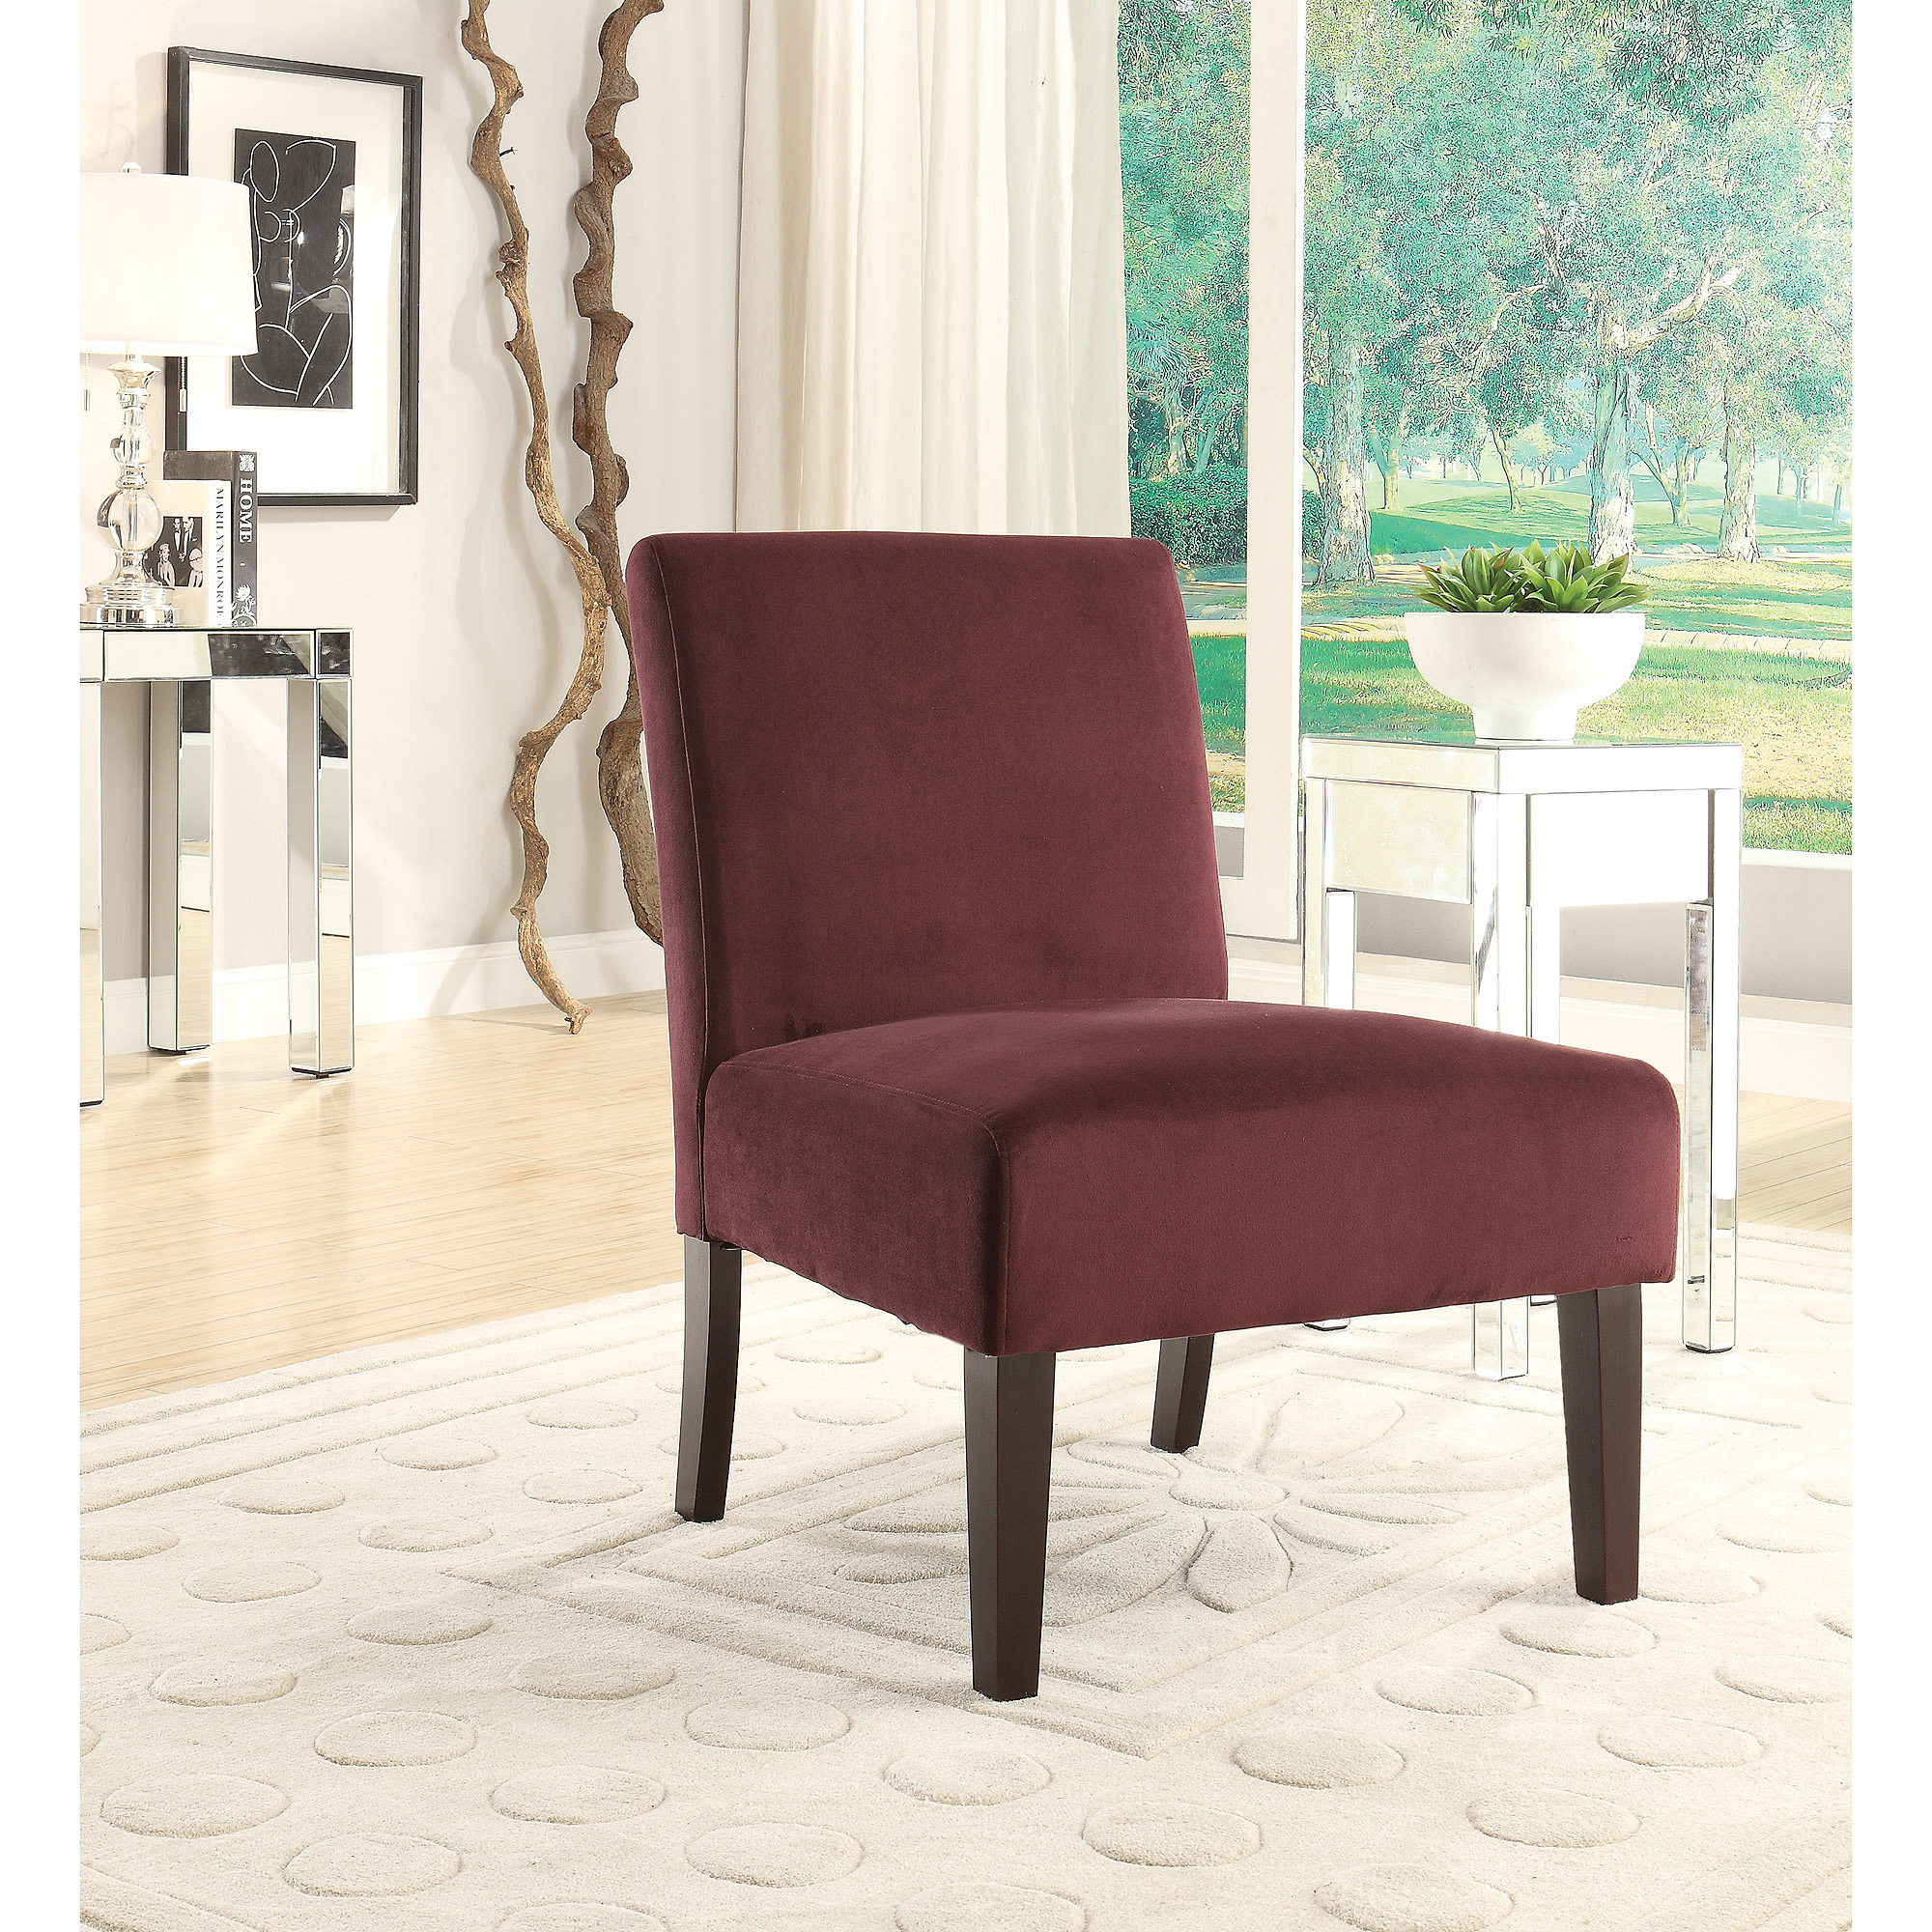 Avenue Six Laguna Armless Accent Chair in Velvet